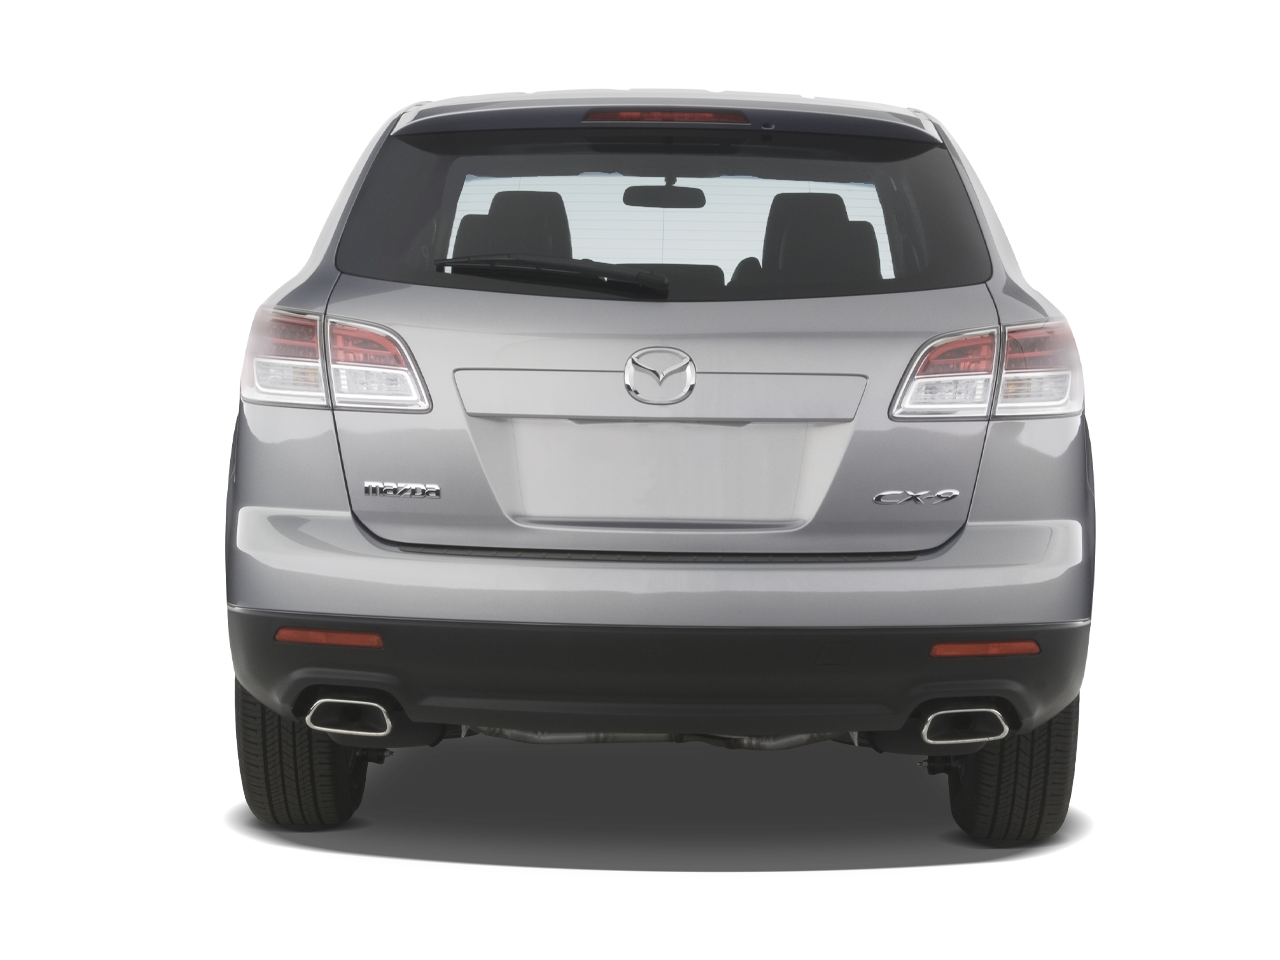 http://st.automobilemag.com/uploads/sites/10/2015/11/2007-mazda-cx-9-touring-fwd-suv-rear-view.png